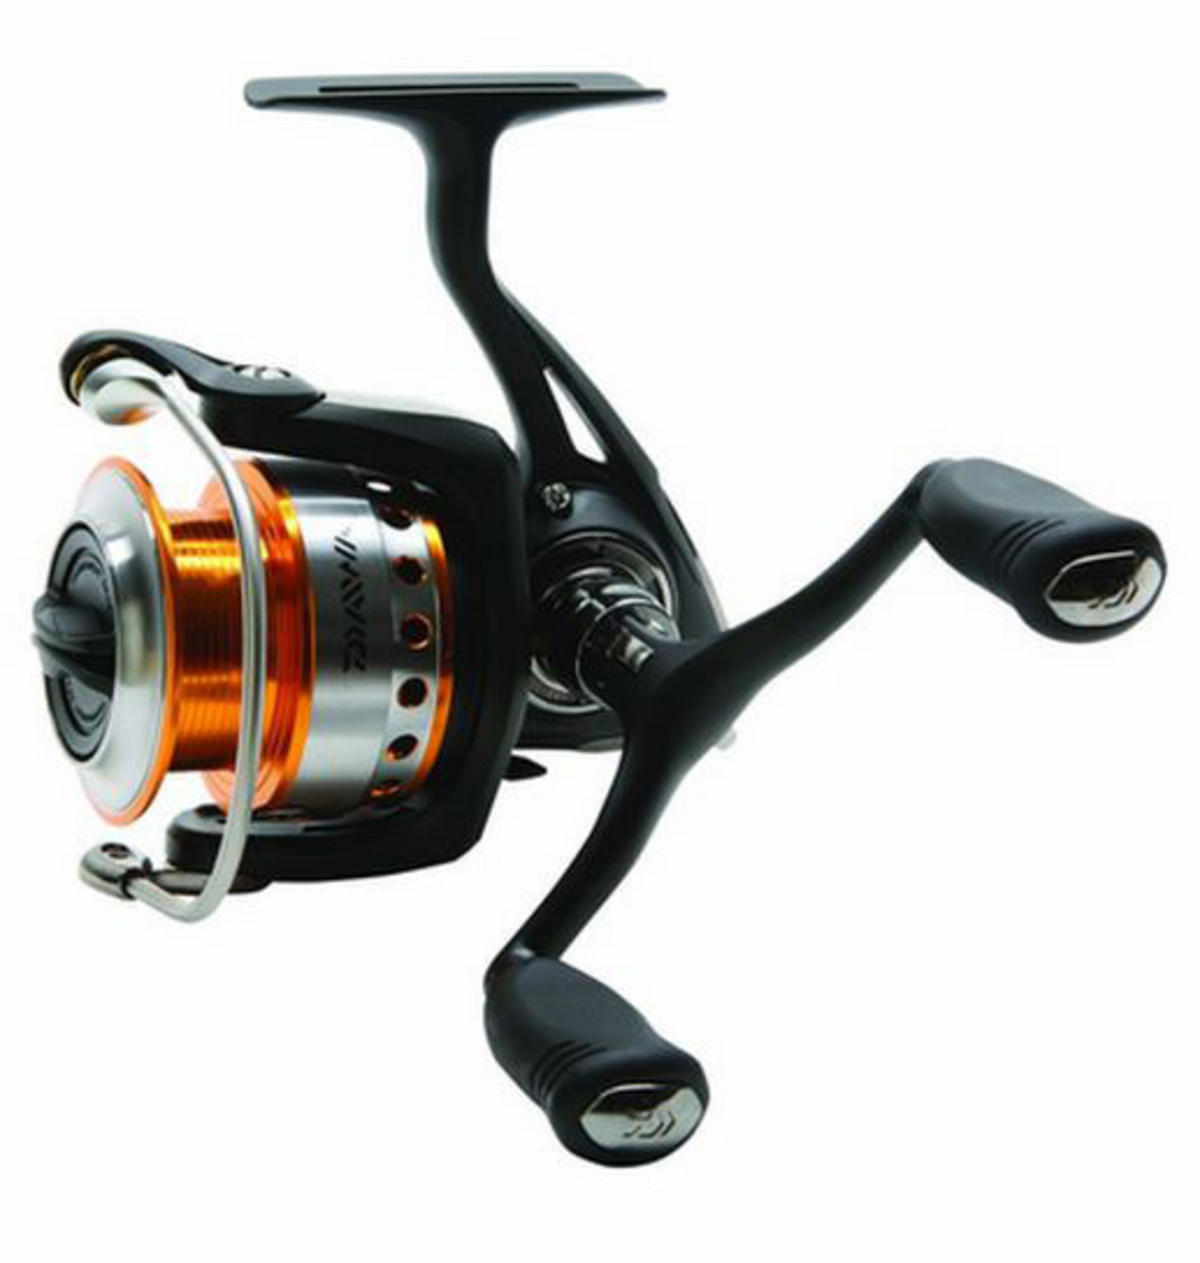 Daiwa Team Daiwa Match Reel 2508D (Double Handle) Model No. TDM2508D